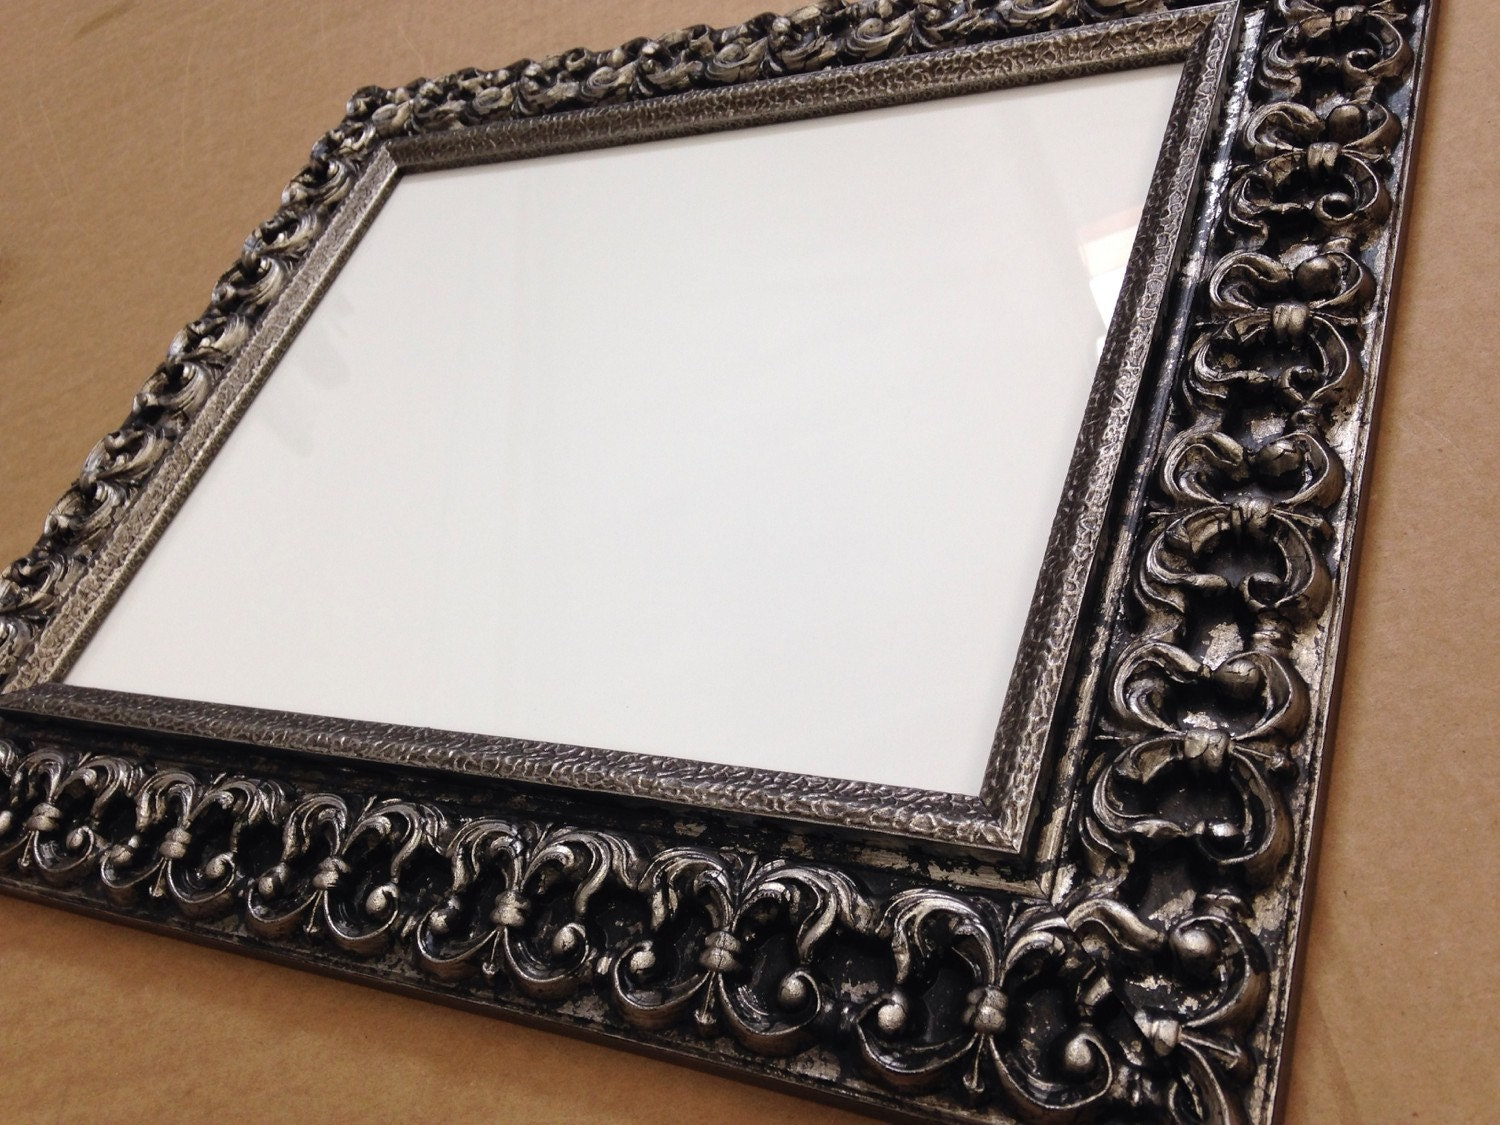 11x14 silver picture frame choice image craft decoration ideas black silver ornate picture frame 3x5 4x6 5x7 8x10 11x14 2400 jeuxipadfo choice image jeuxipadfo Image collections